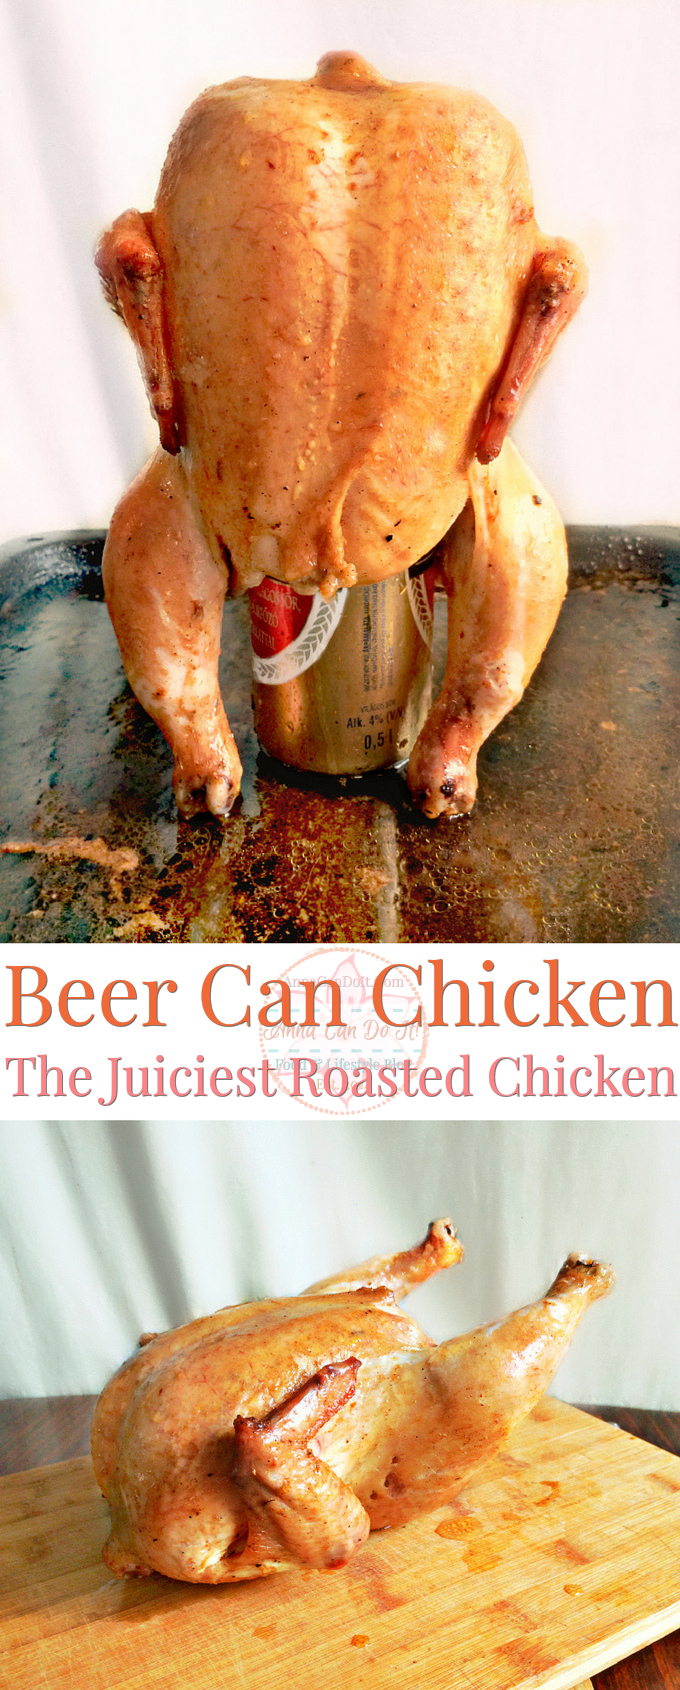 Beer Can Chicken - The Juiciest Roasted Chicken - Anna Can Do It!